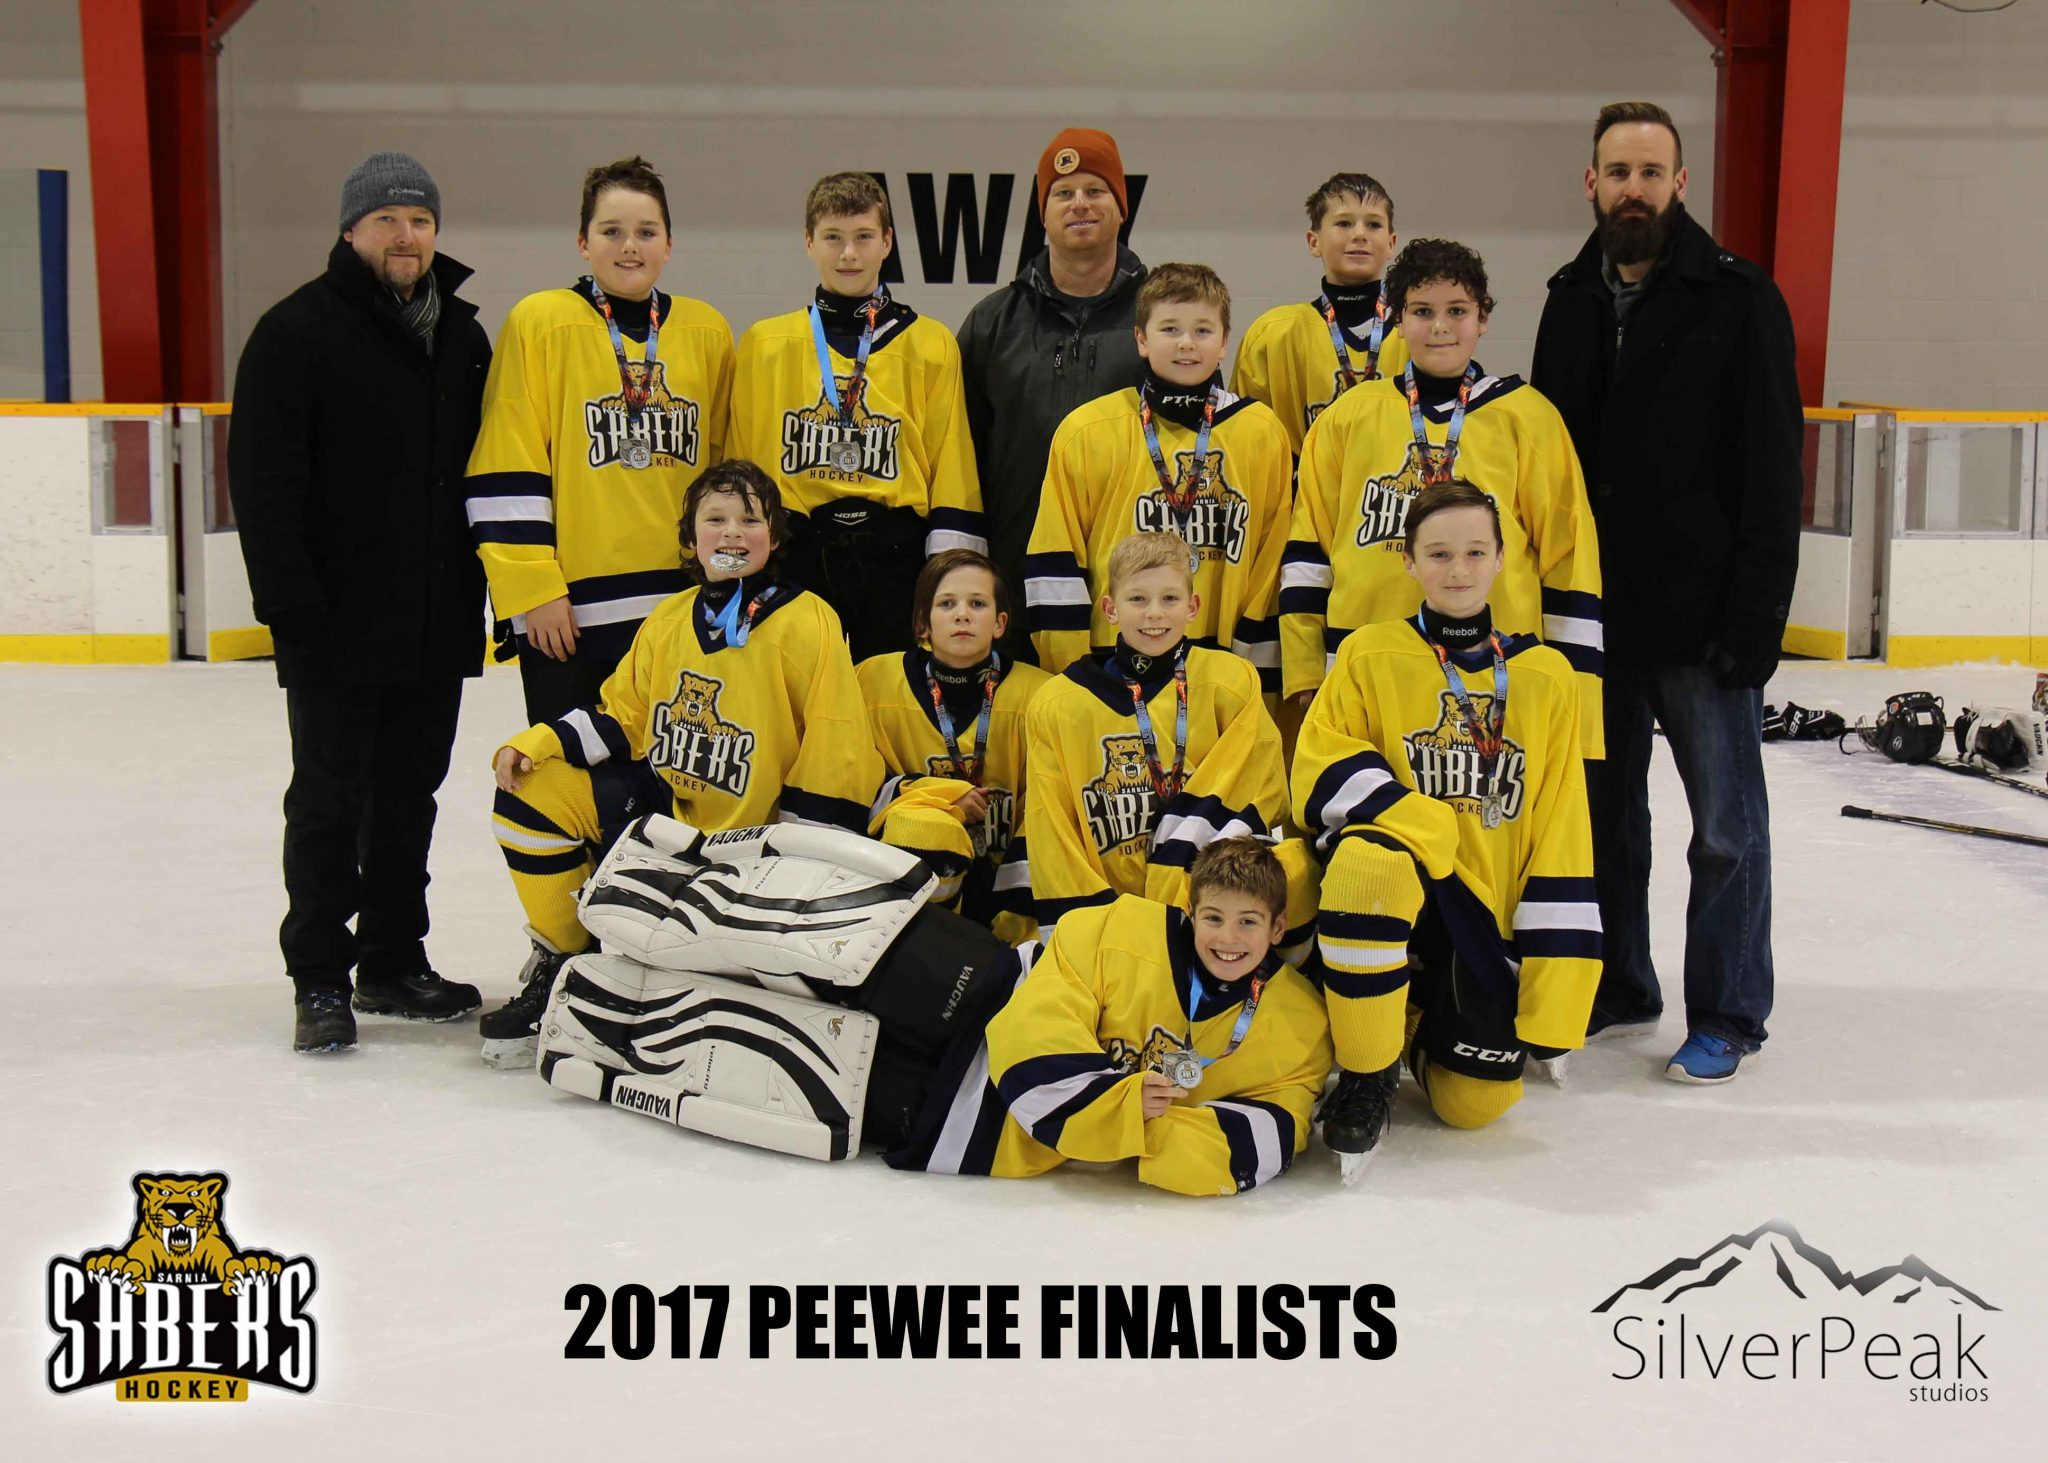 _Peewee Big Daddy Team Yellow Finalists